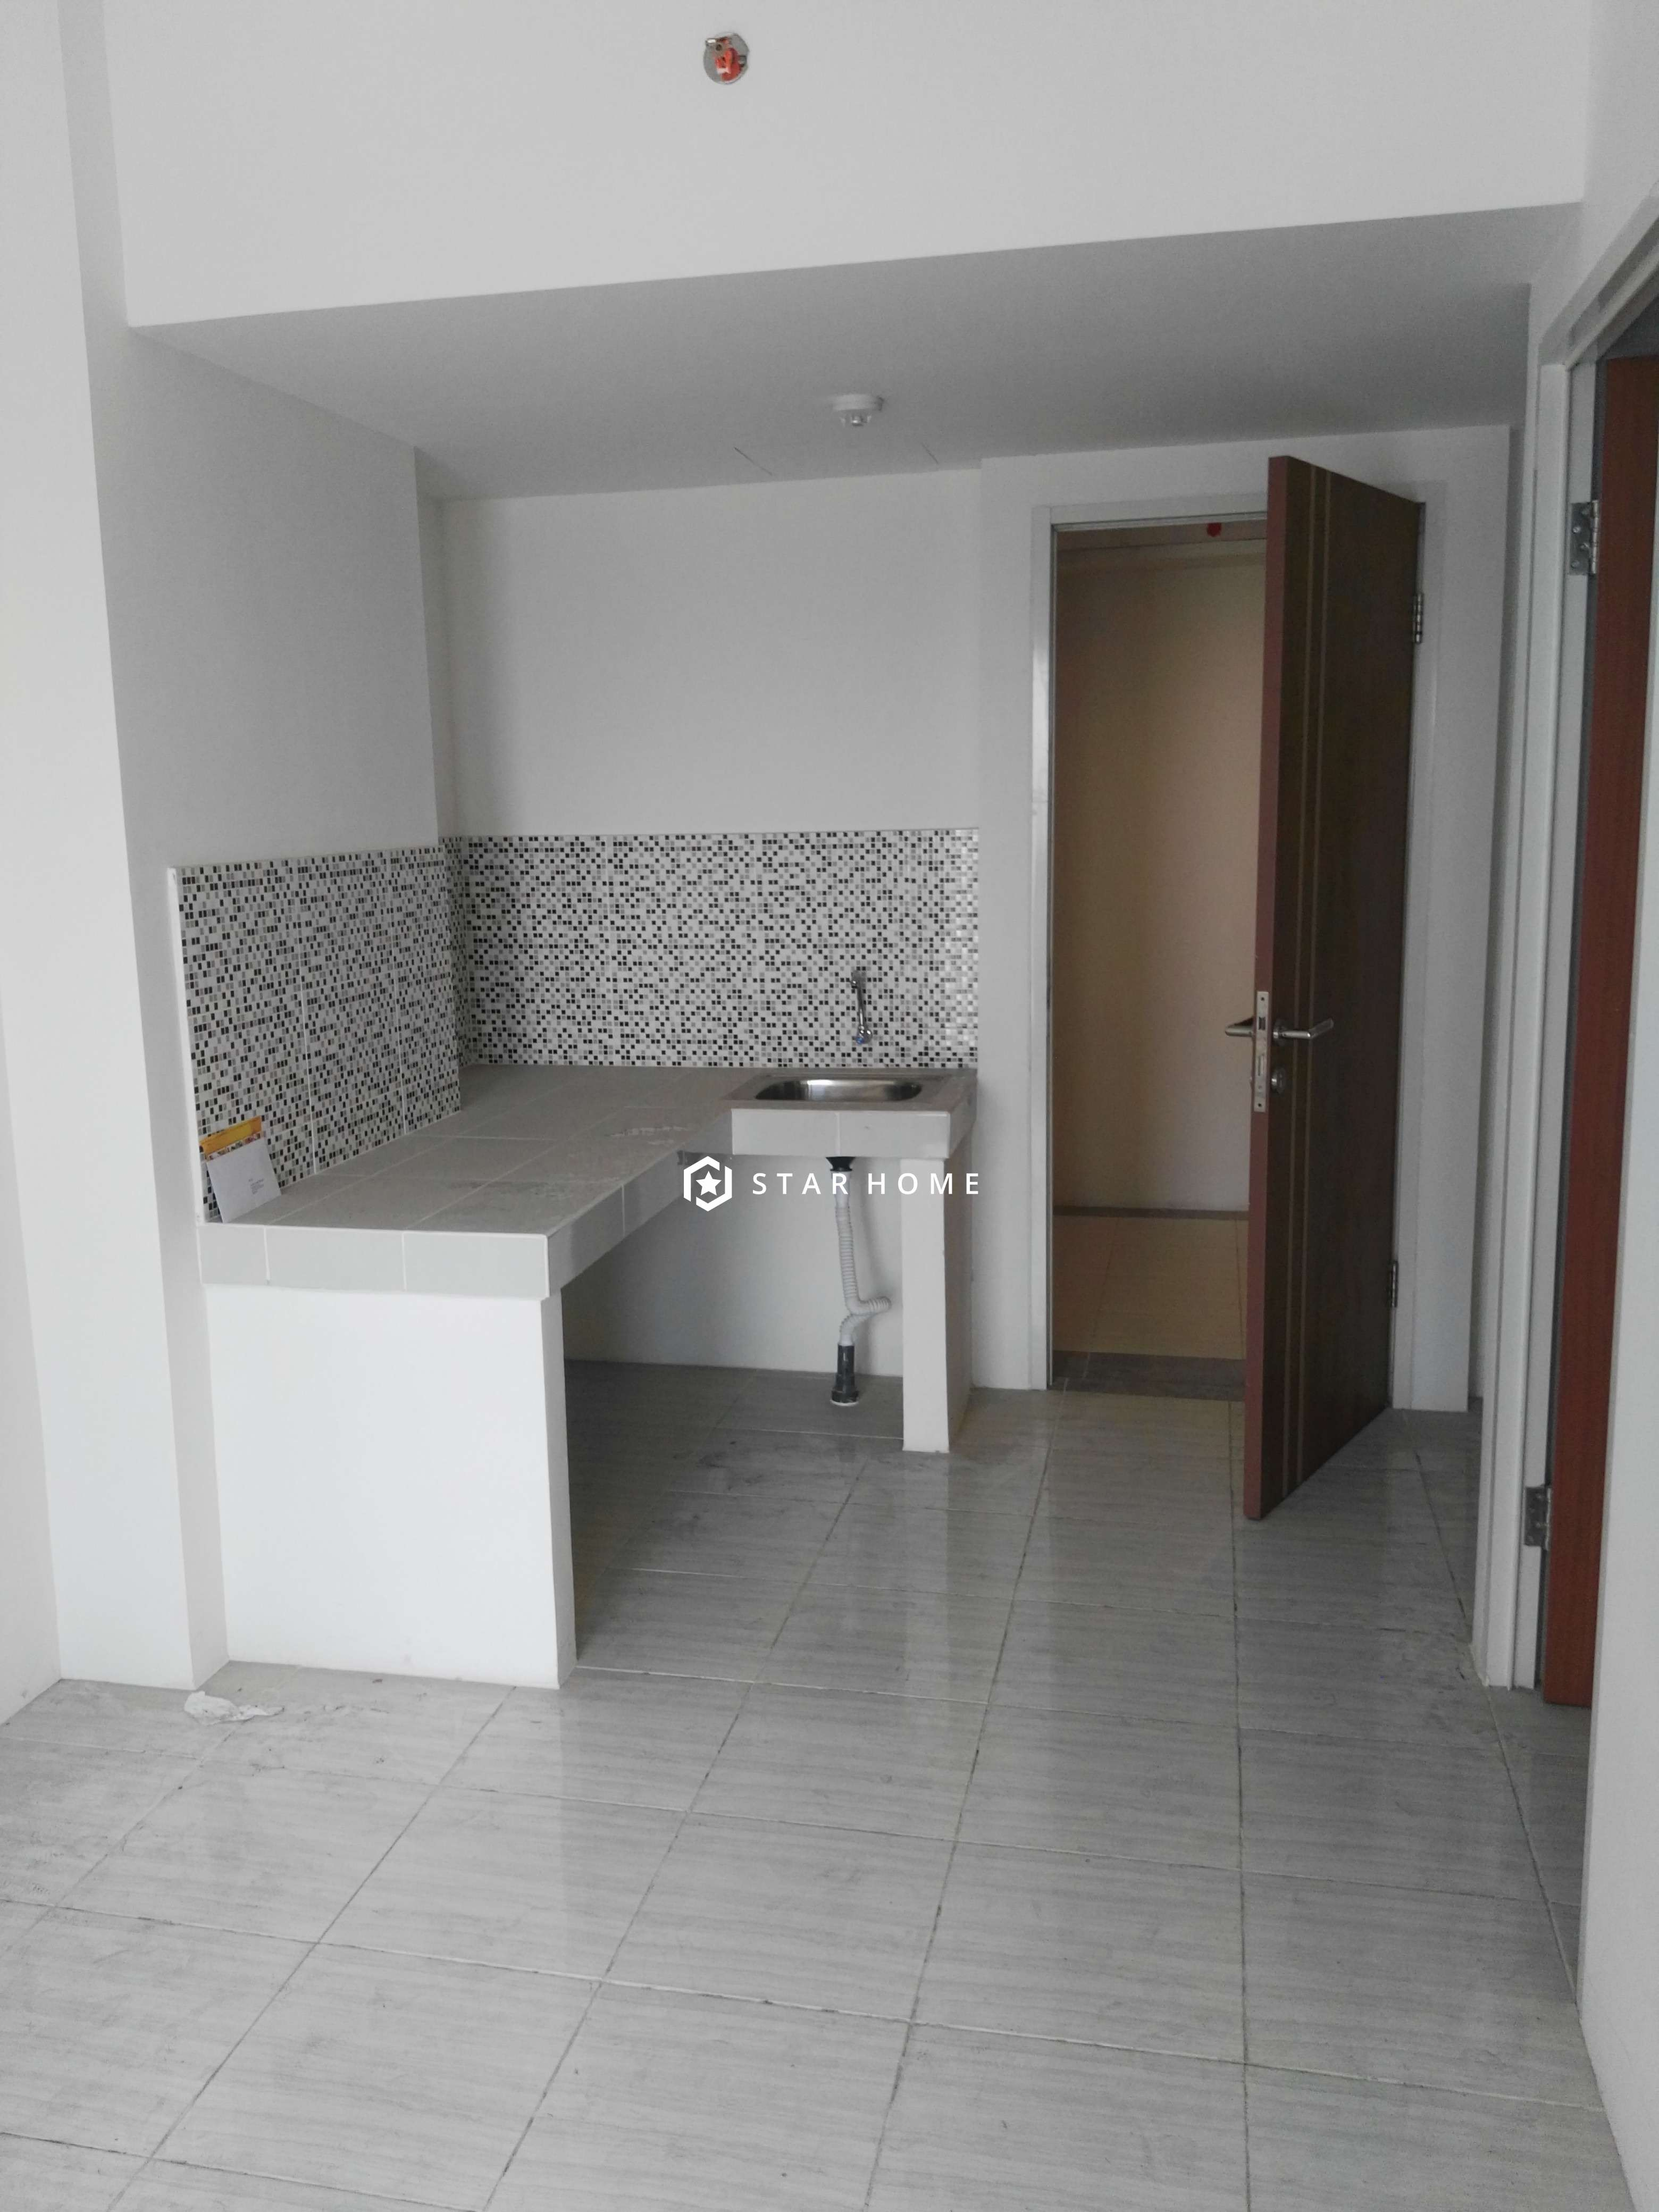 apartment-2-bed-room-3